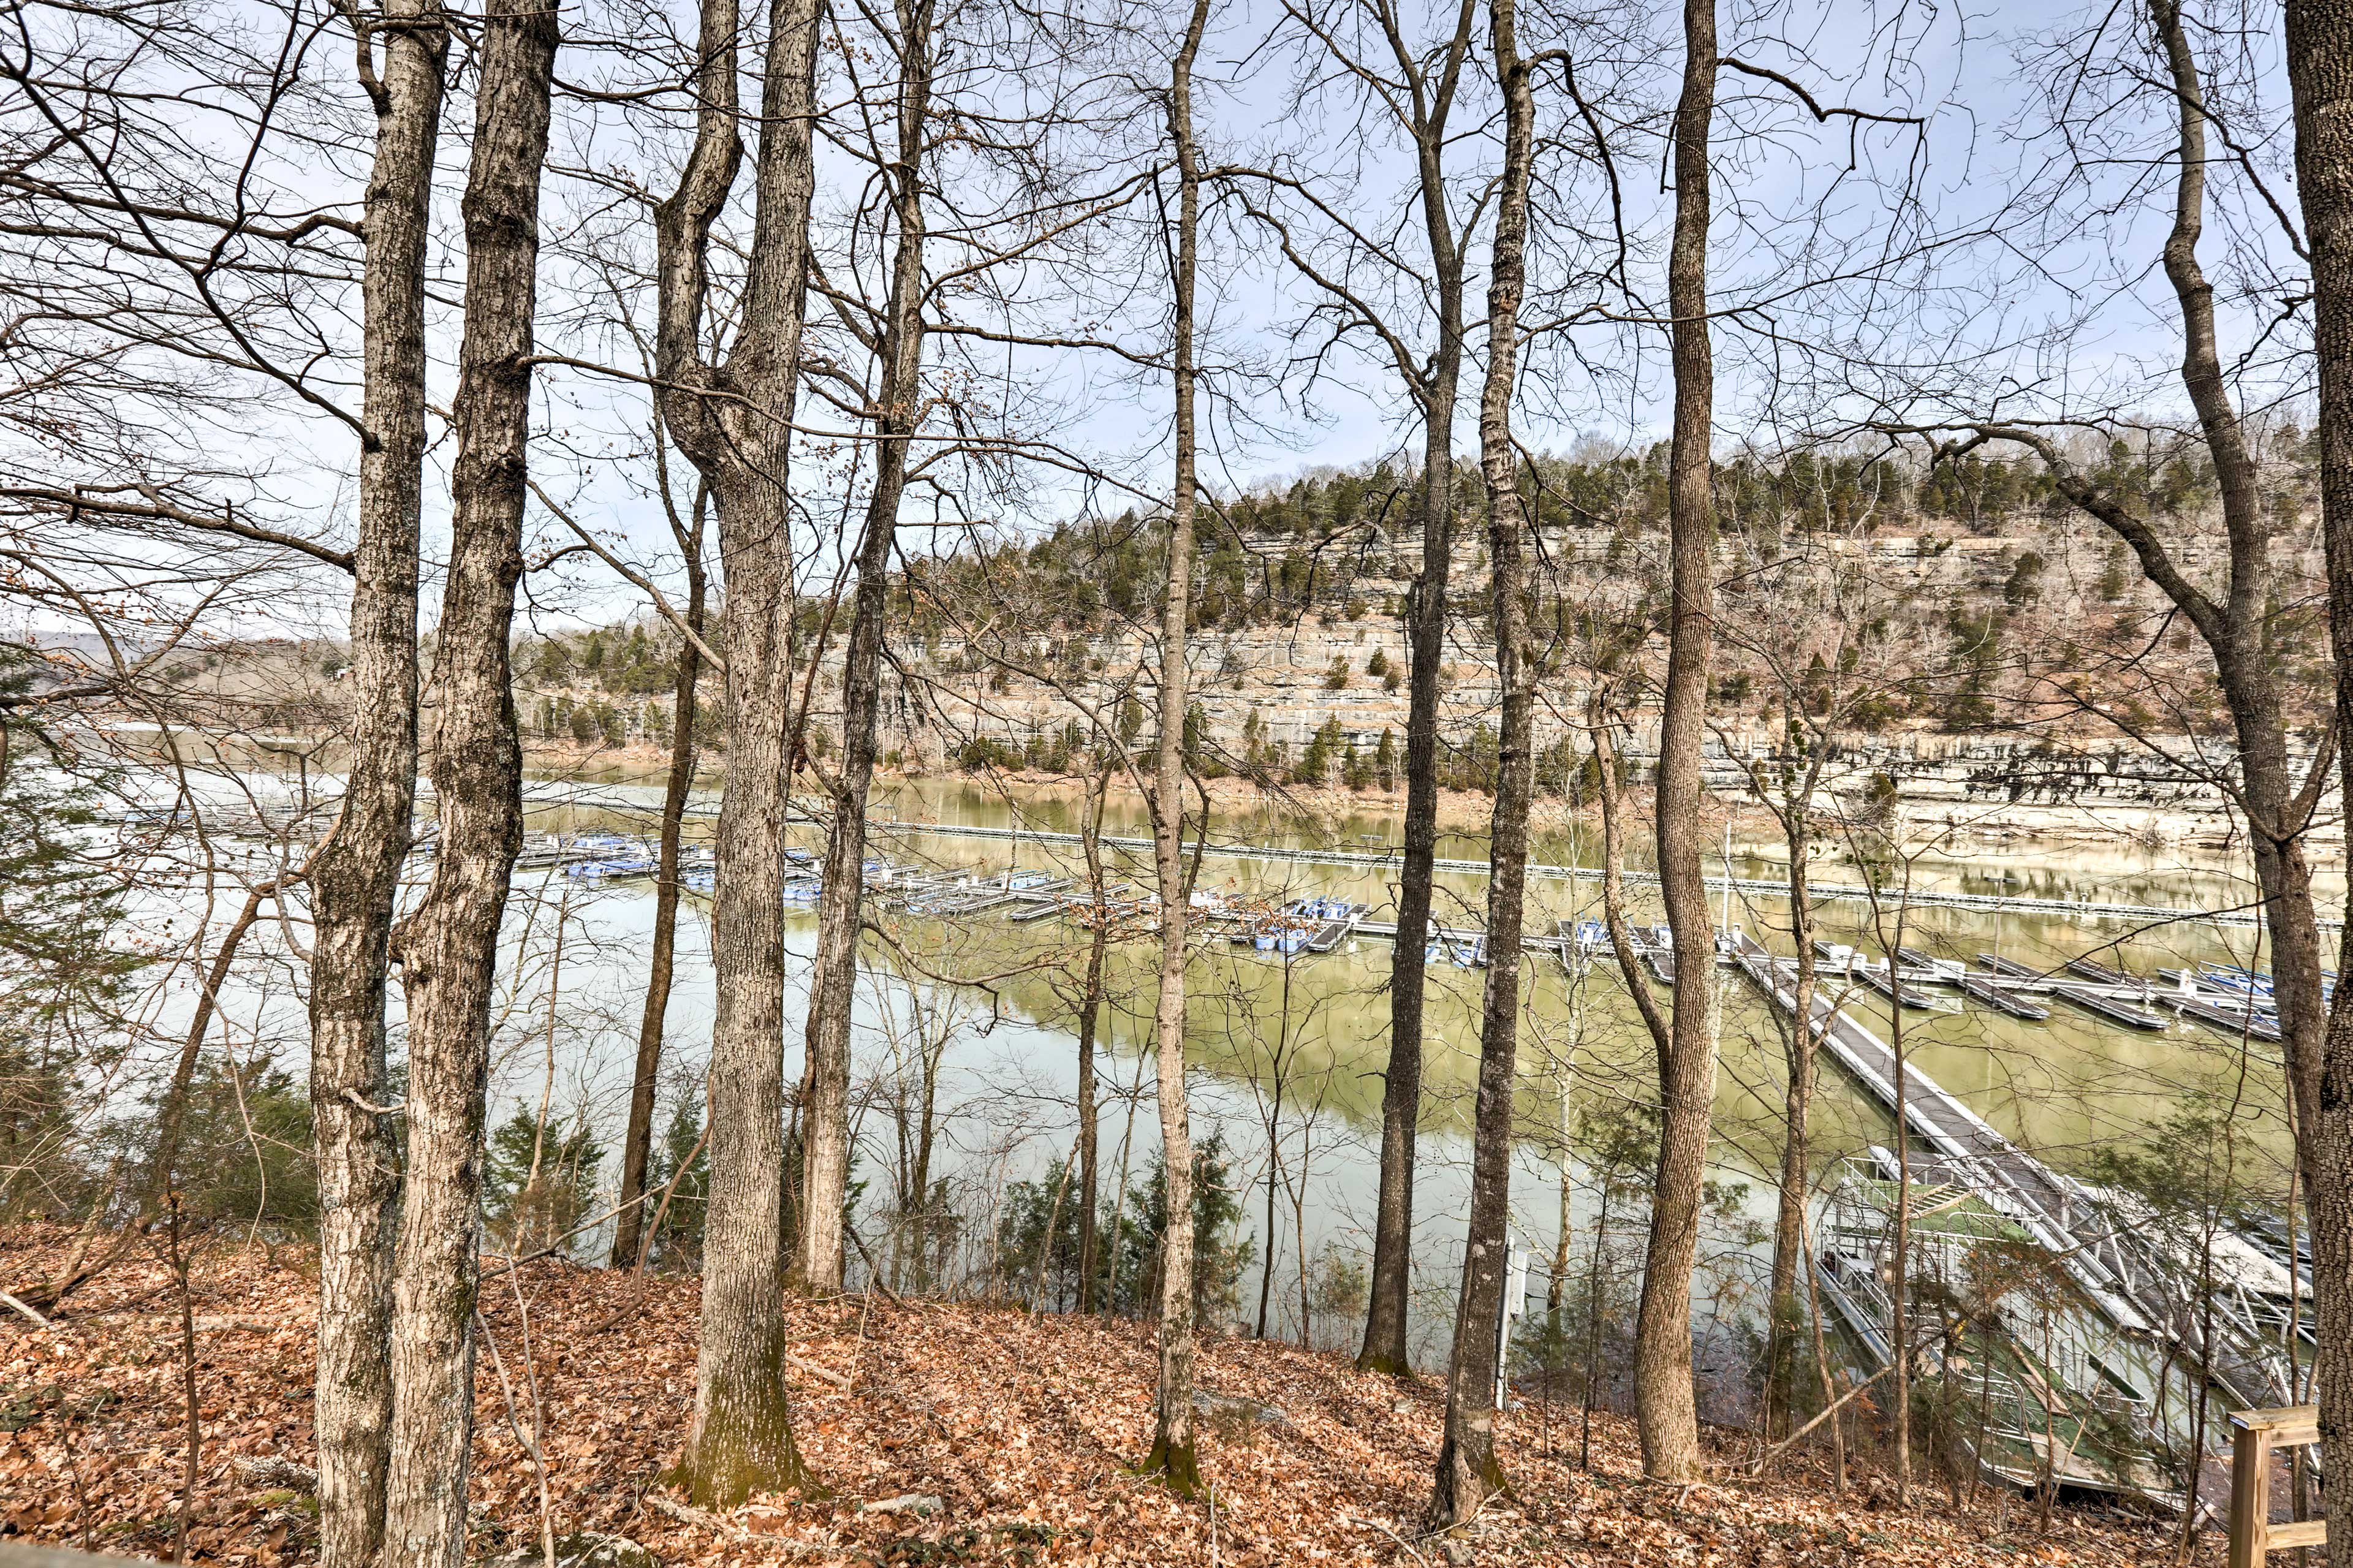 Over the river and through the woods...are lovely Lake Cumberland views!